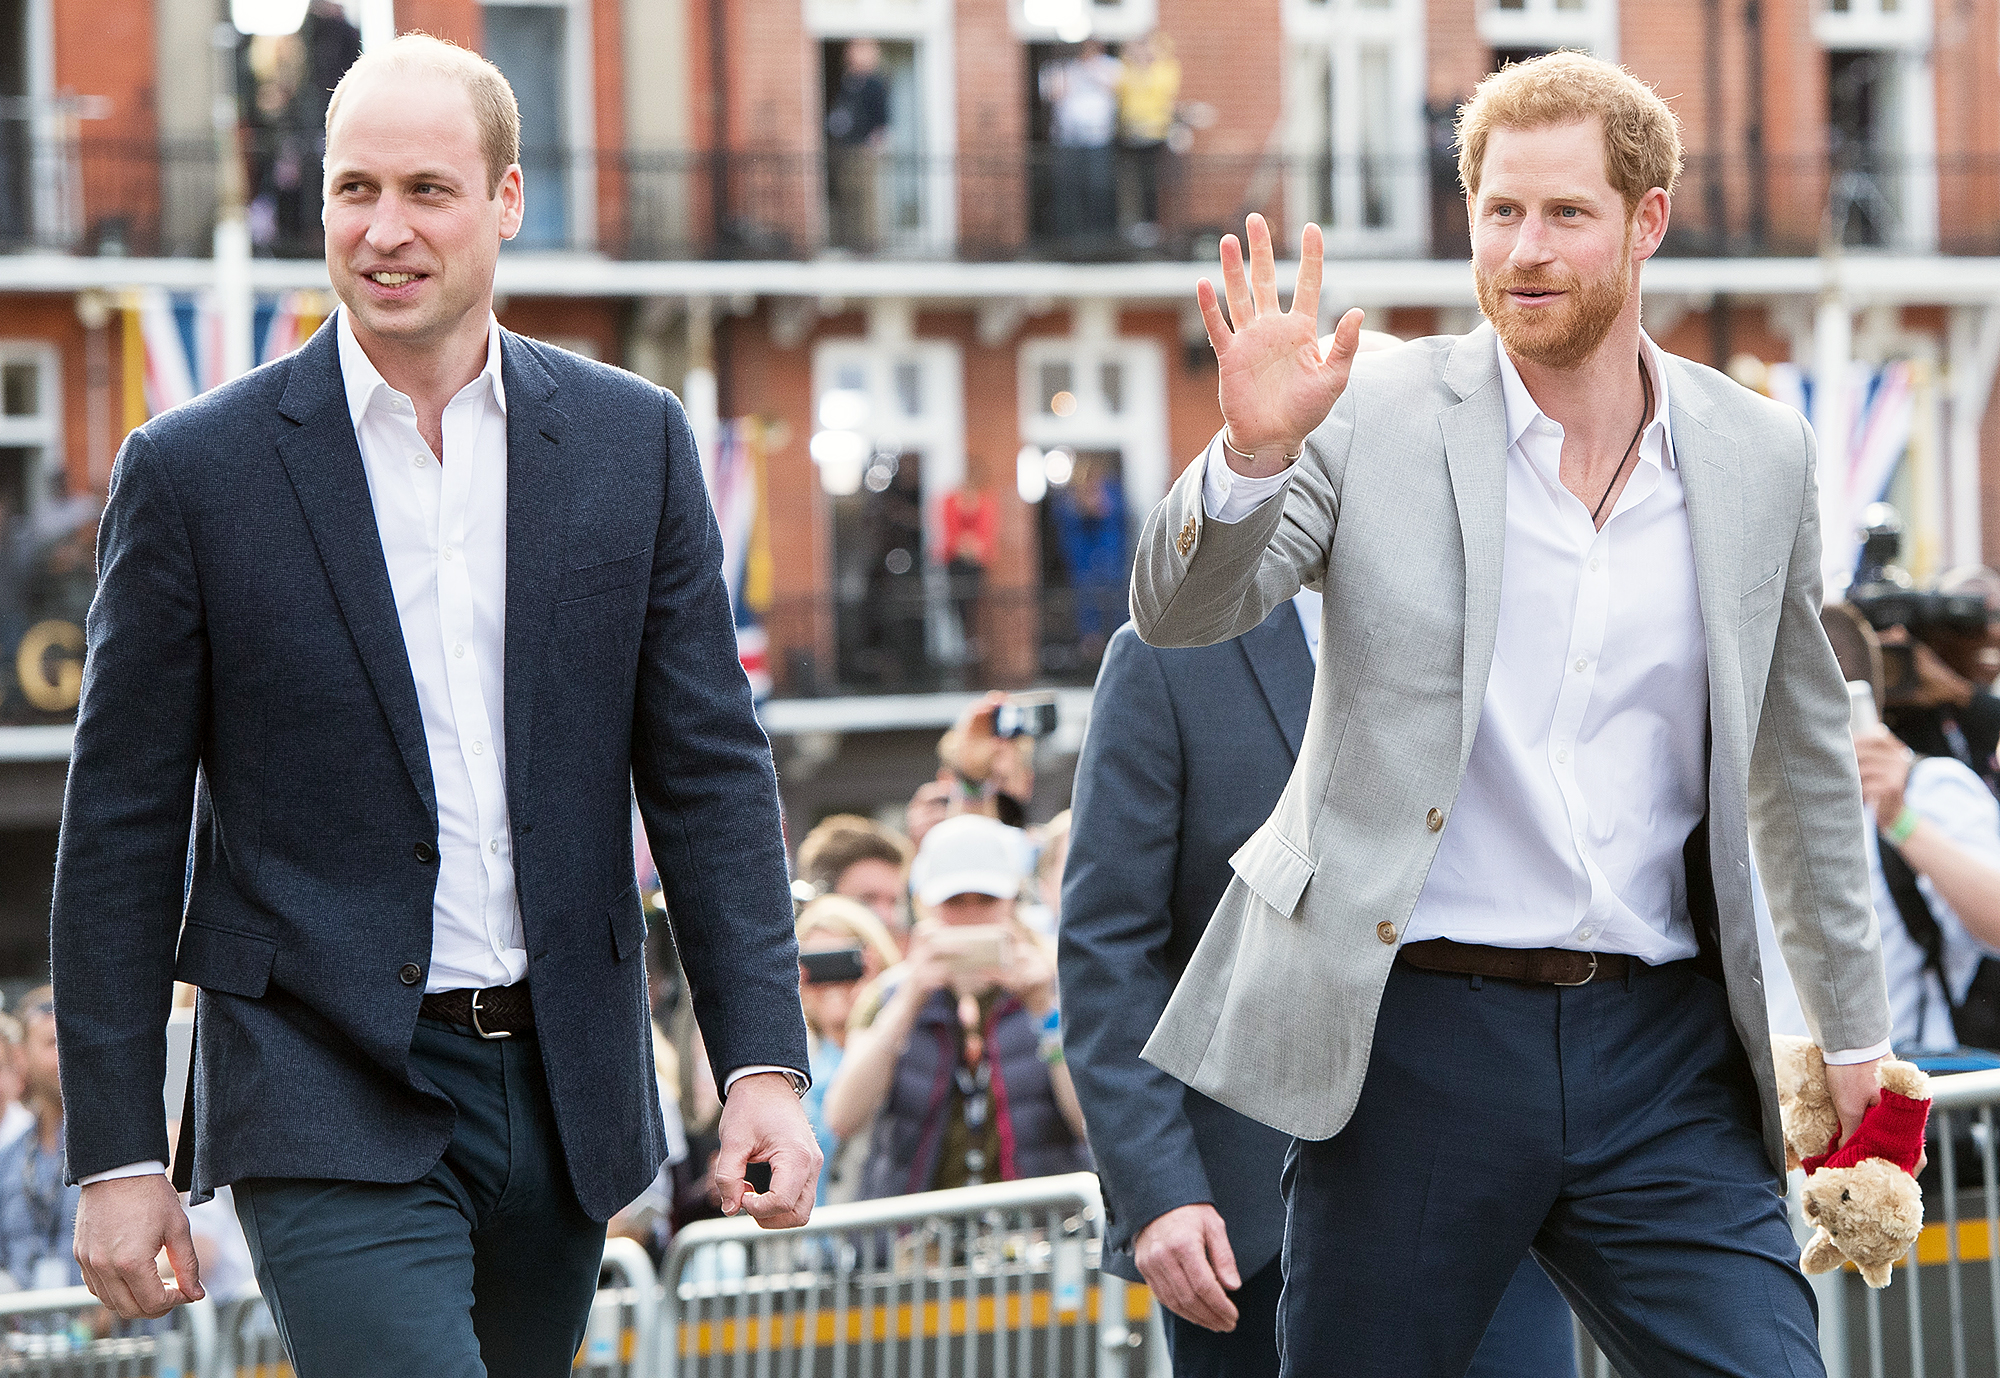 Prince Harry Will Wear A Wedding Band Unlike Brother Prince William